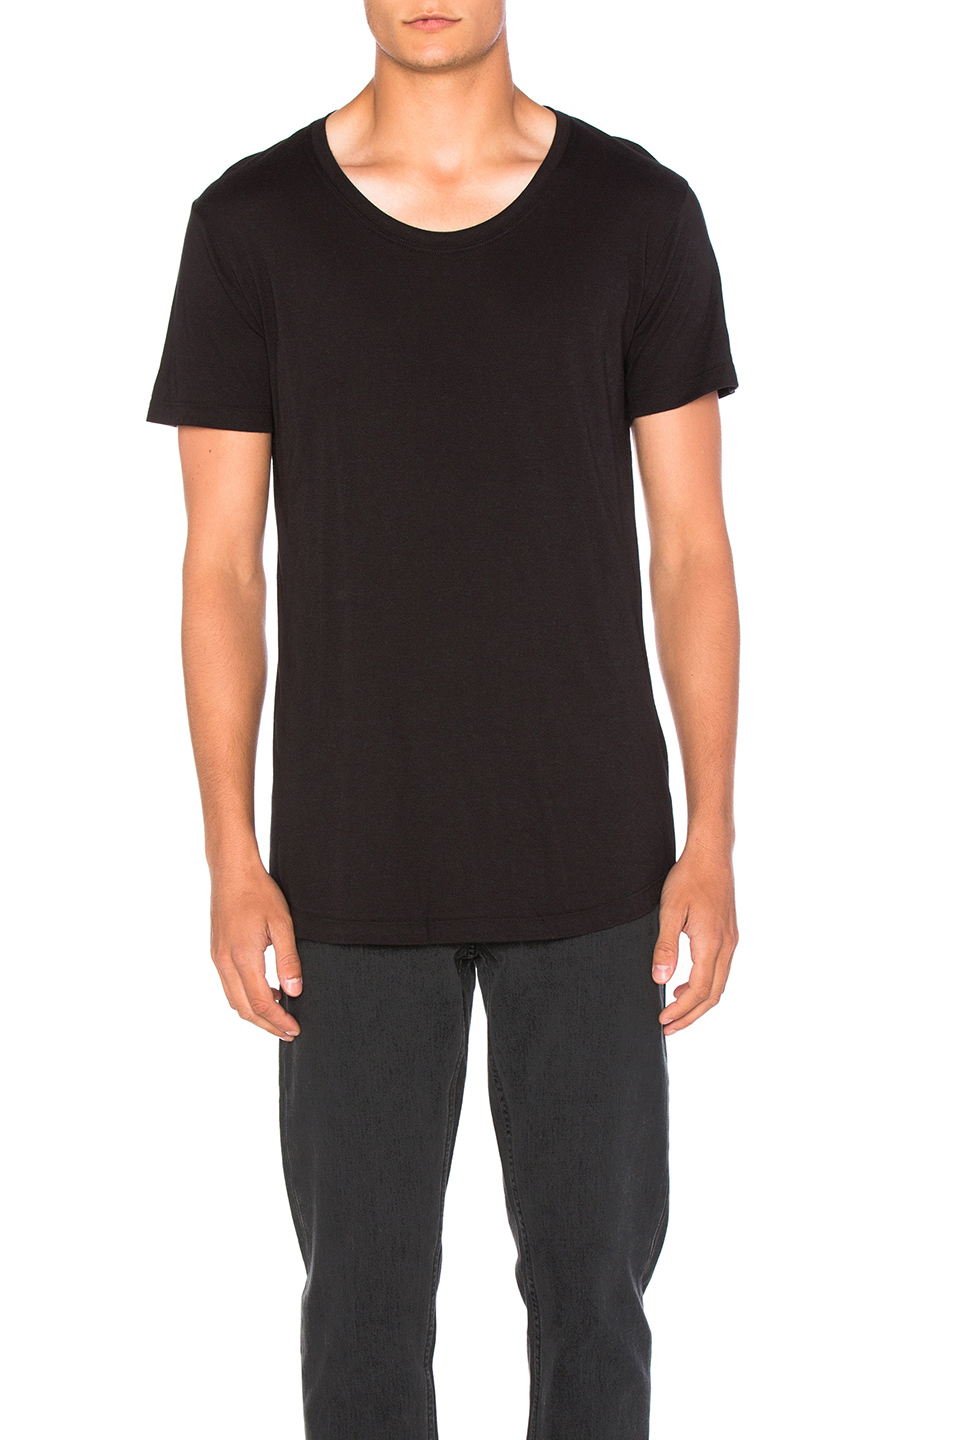 JOHN ELLIOTT Curve U Neck in Black